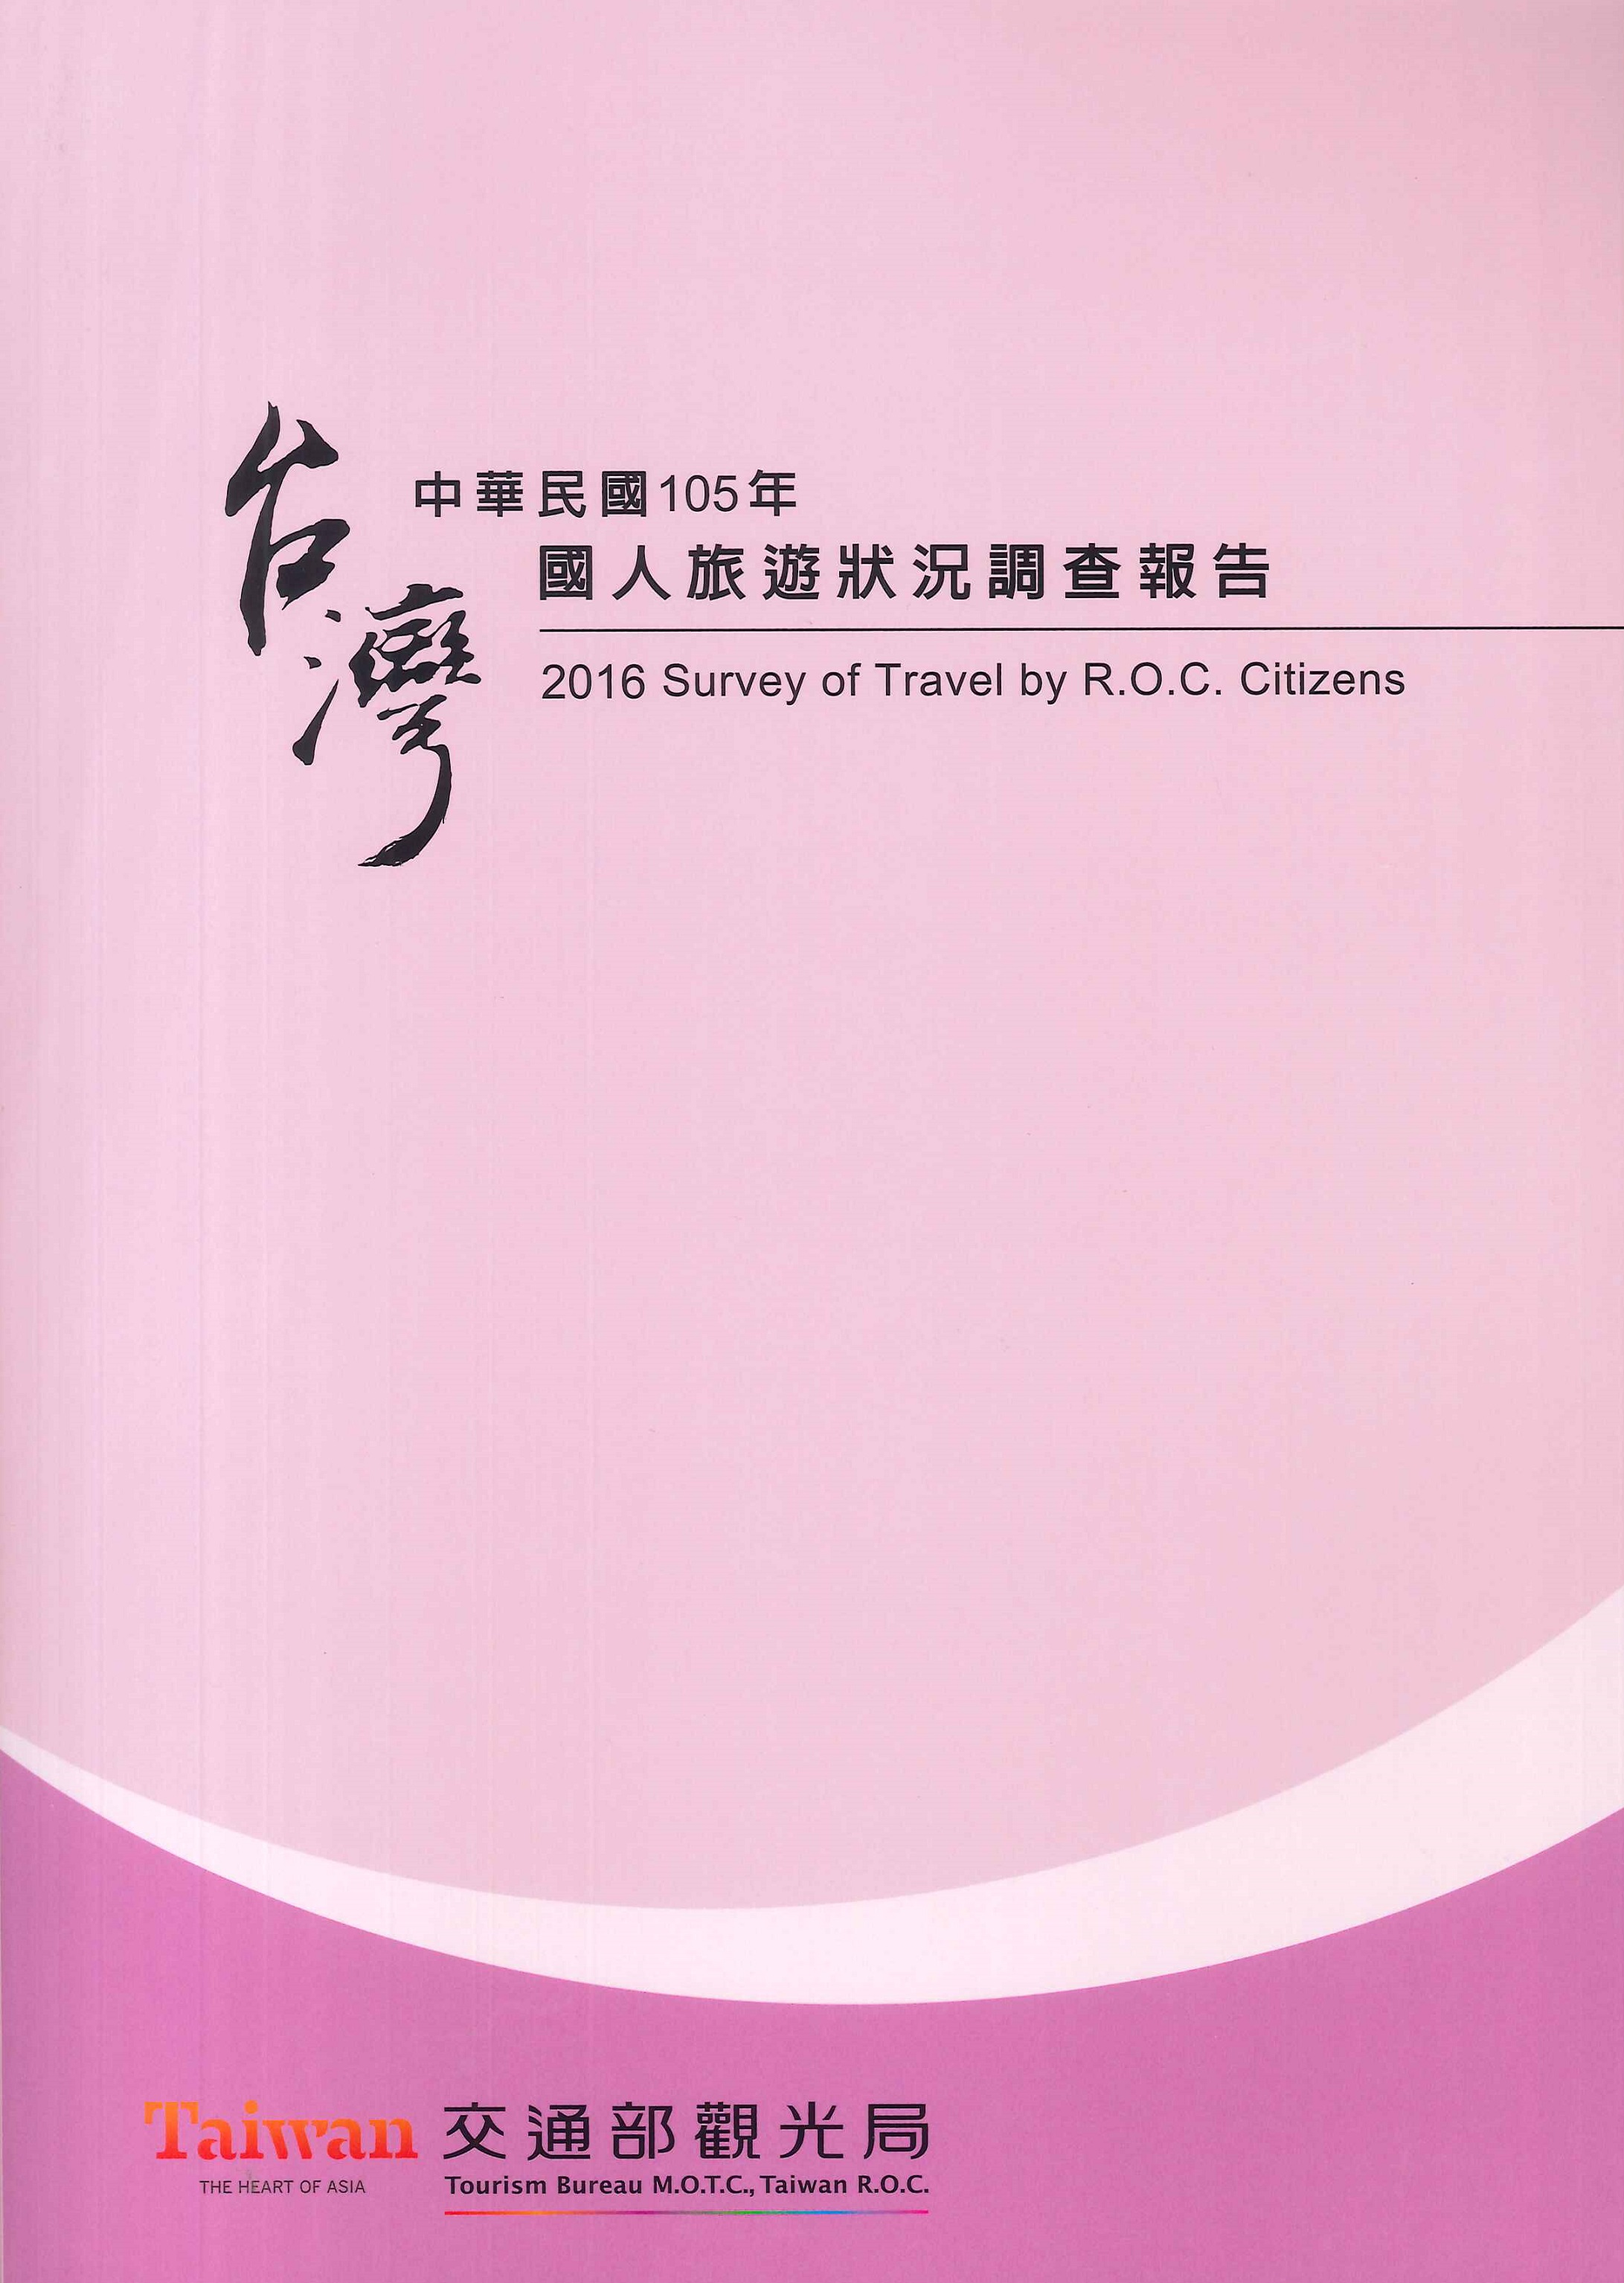 國人旅遊狀況調查報告=Survey of travel by R.O.C. citizens